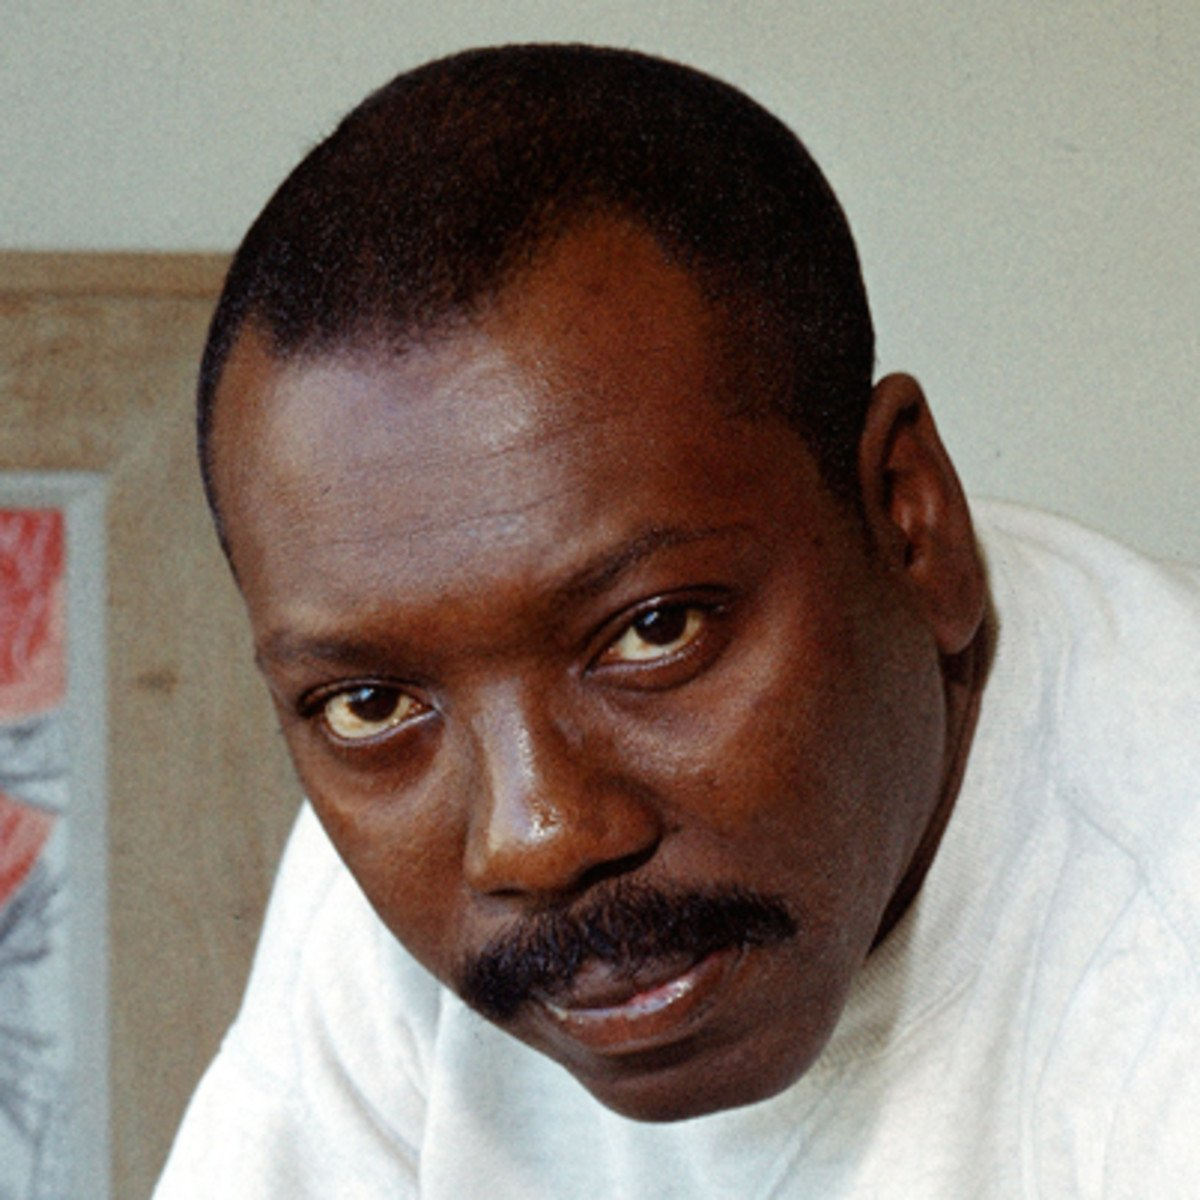 &quot;You bring to a painting your own experience&quot; @jacoblawrence #quote #artist #expressionist #claytonthomasluxury #wow #jacoblawrence<br>http://pic.twitter.com/nf809bNBMN